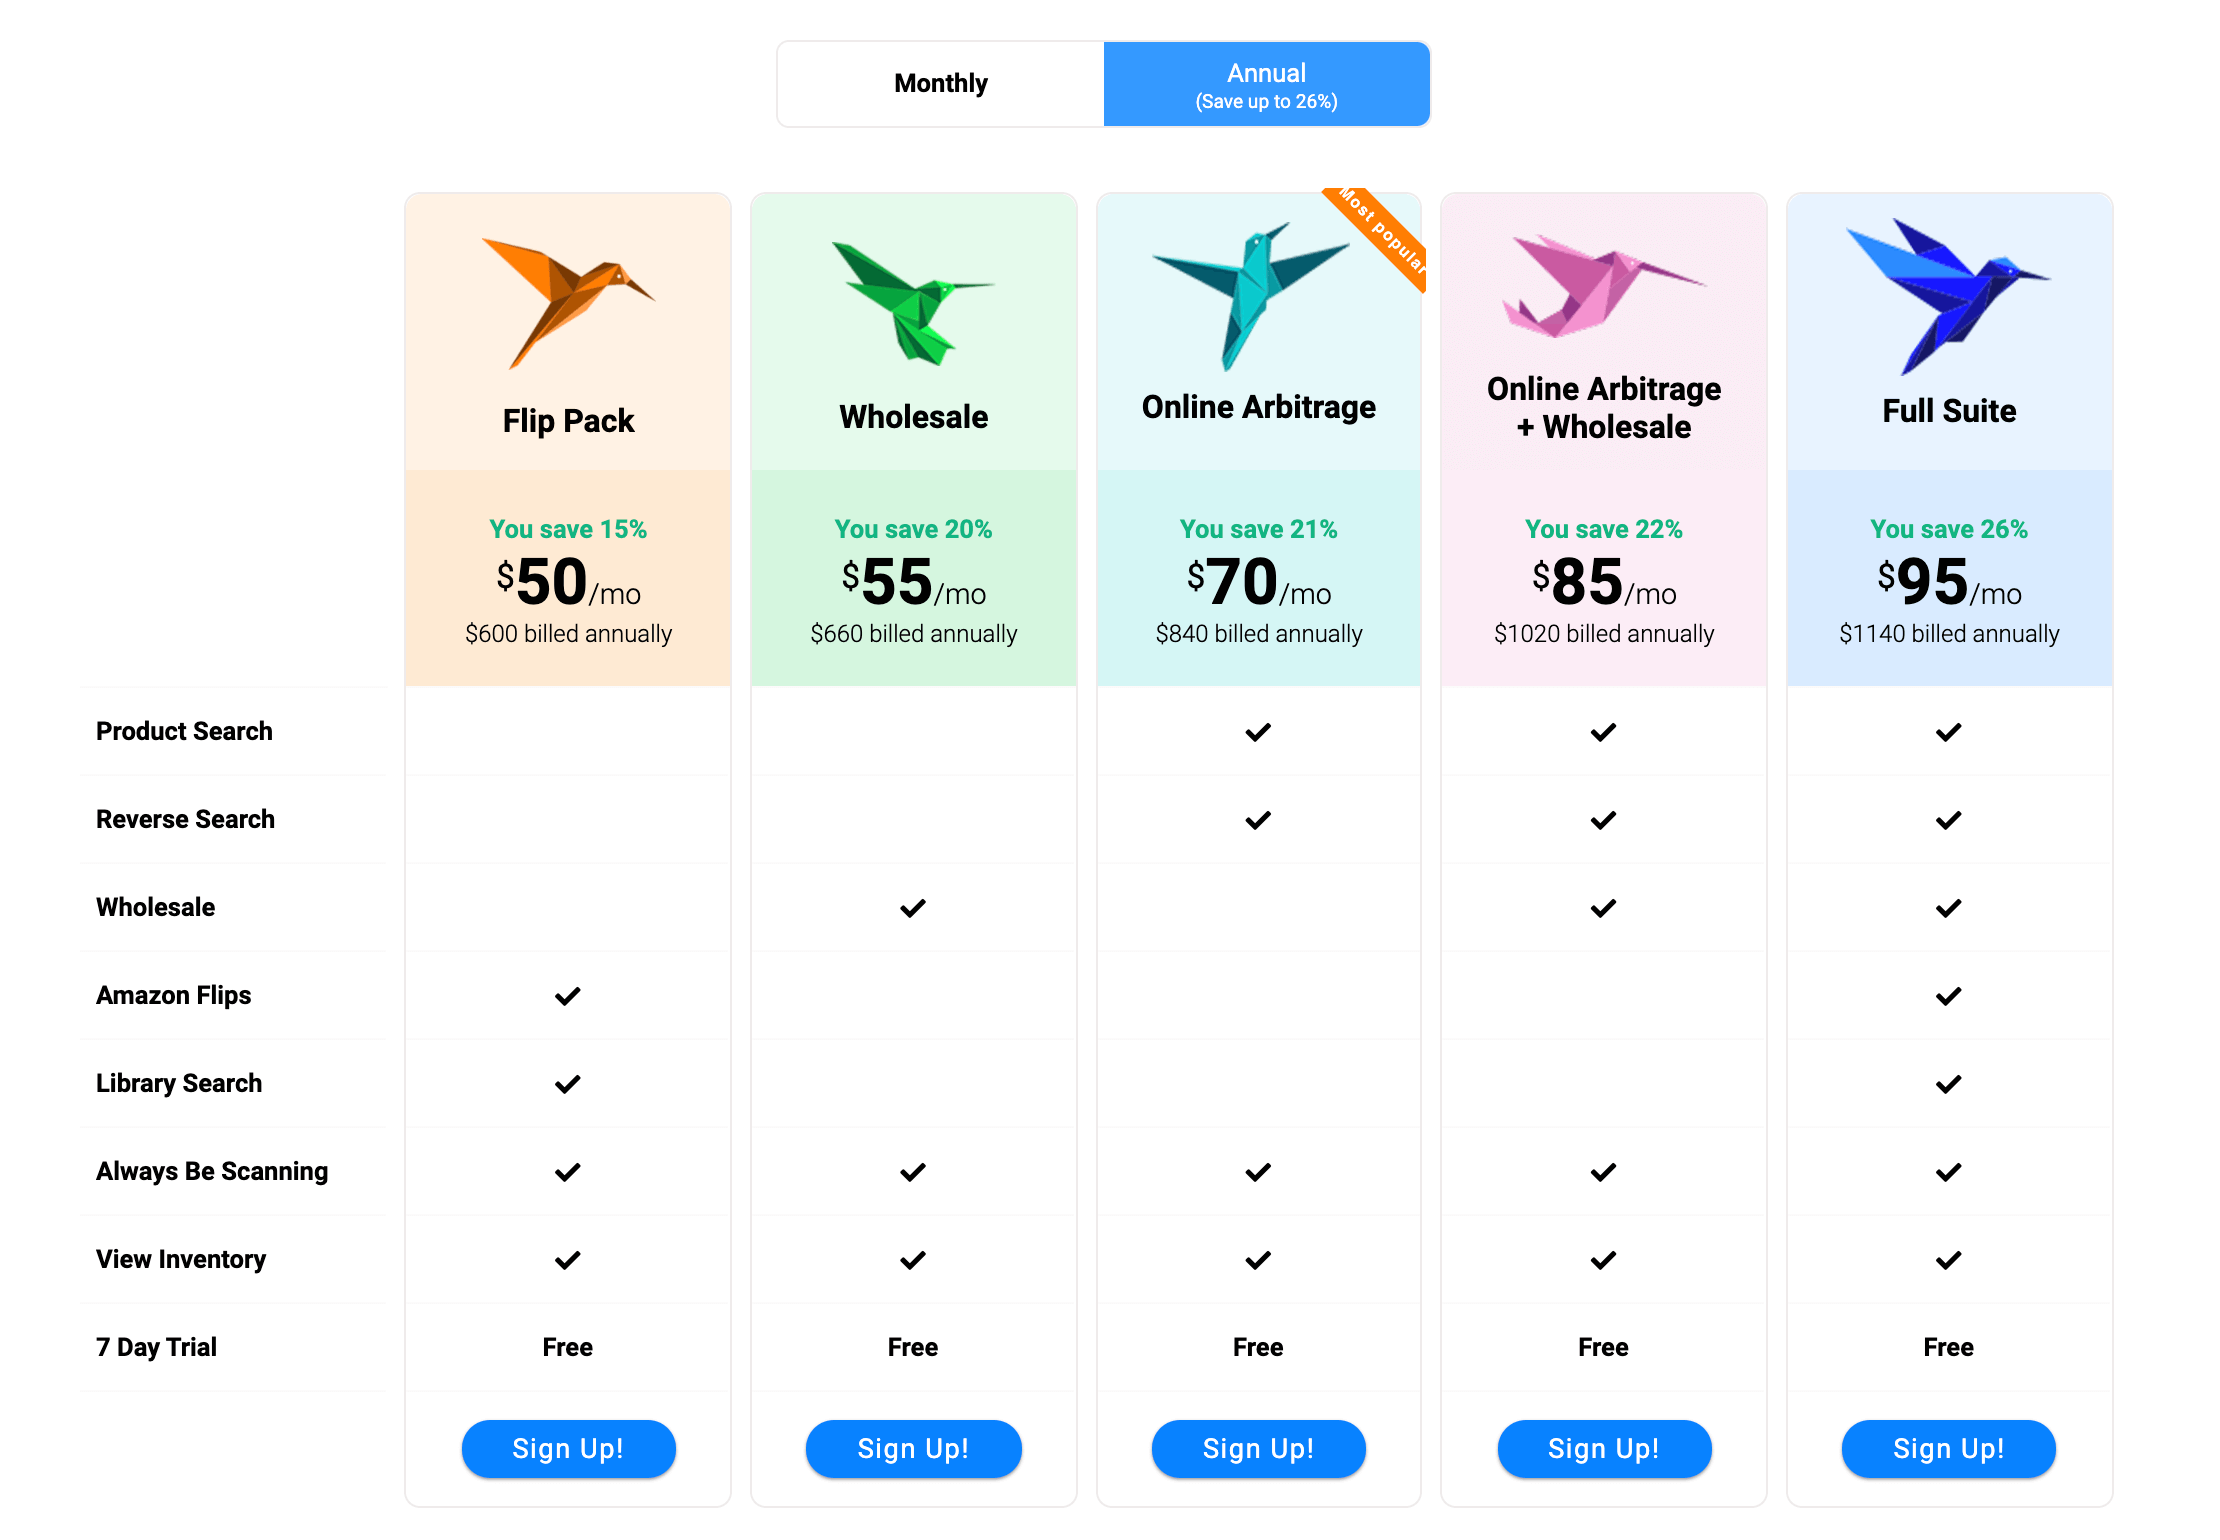 Tactical Arbitrage Updated Pricing